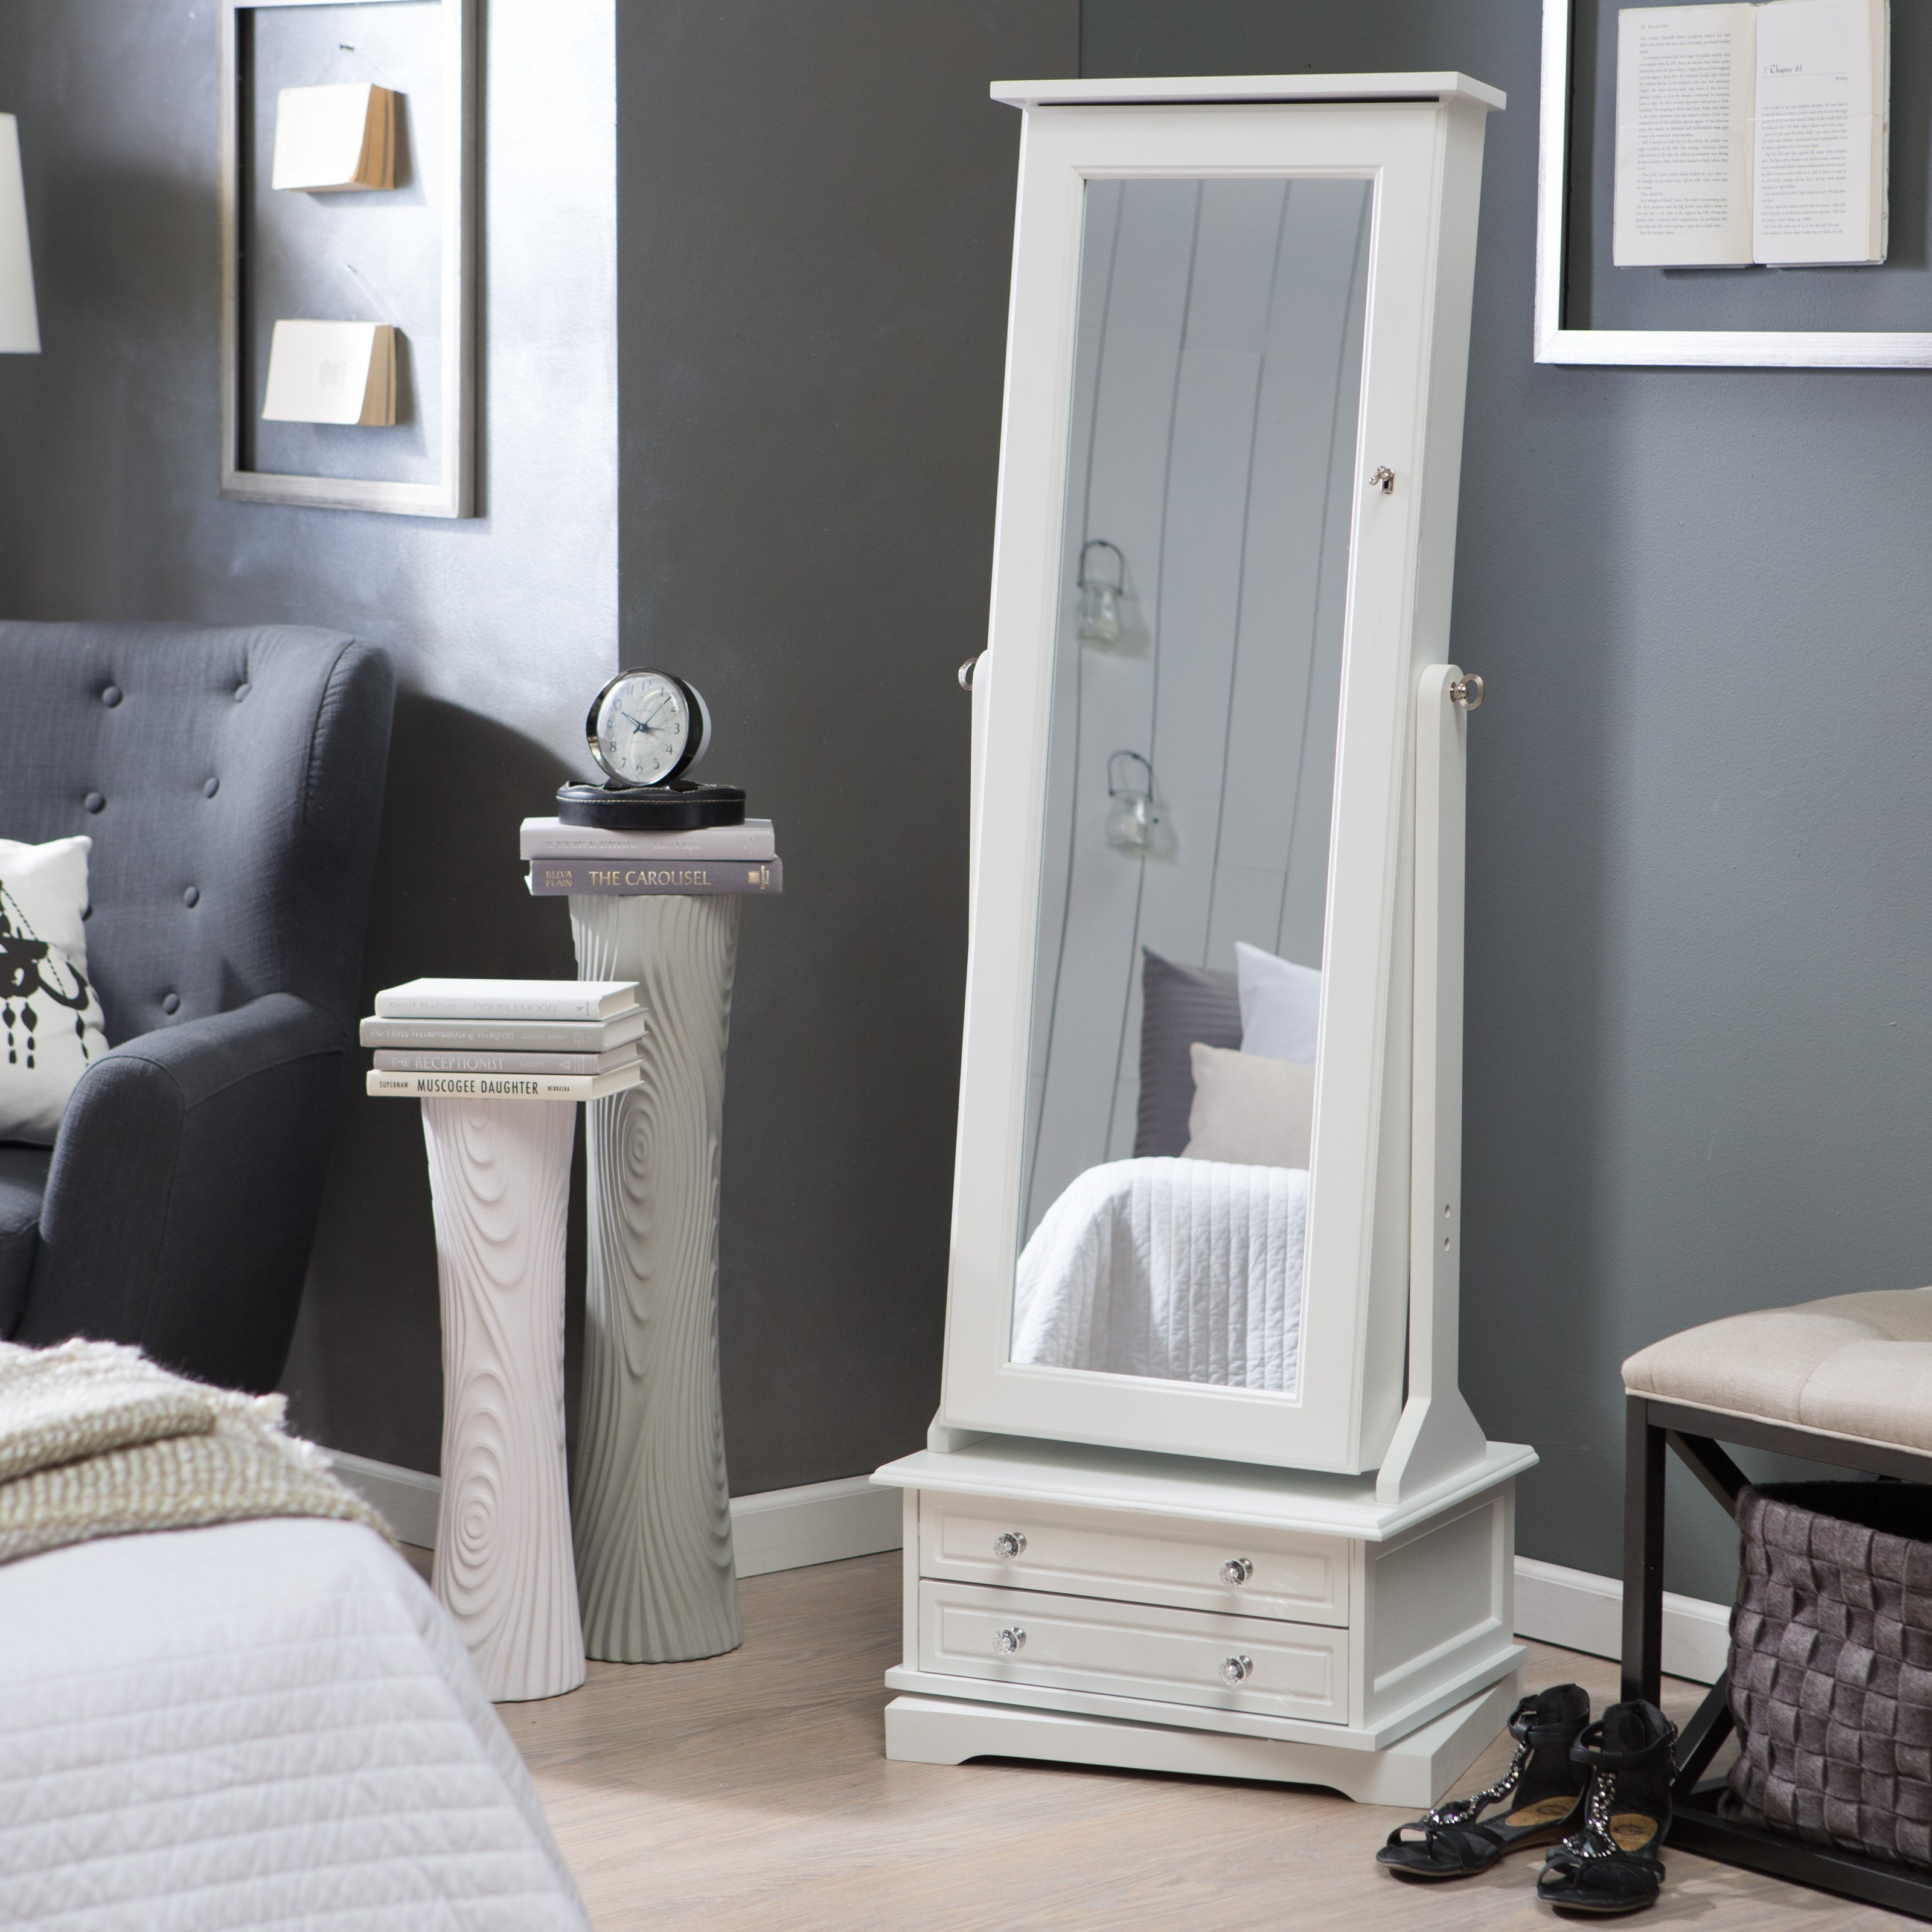 Remarkable White Furnishing In Living Room Deco Showcasing Intended For Large White Floor Mirror (Image 12 of 15)